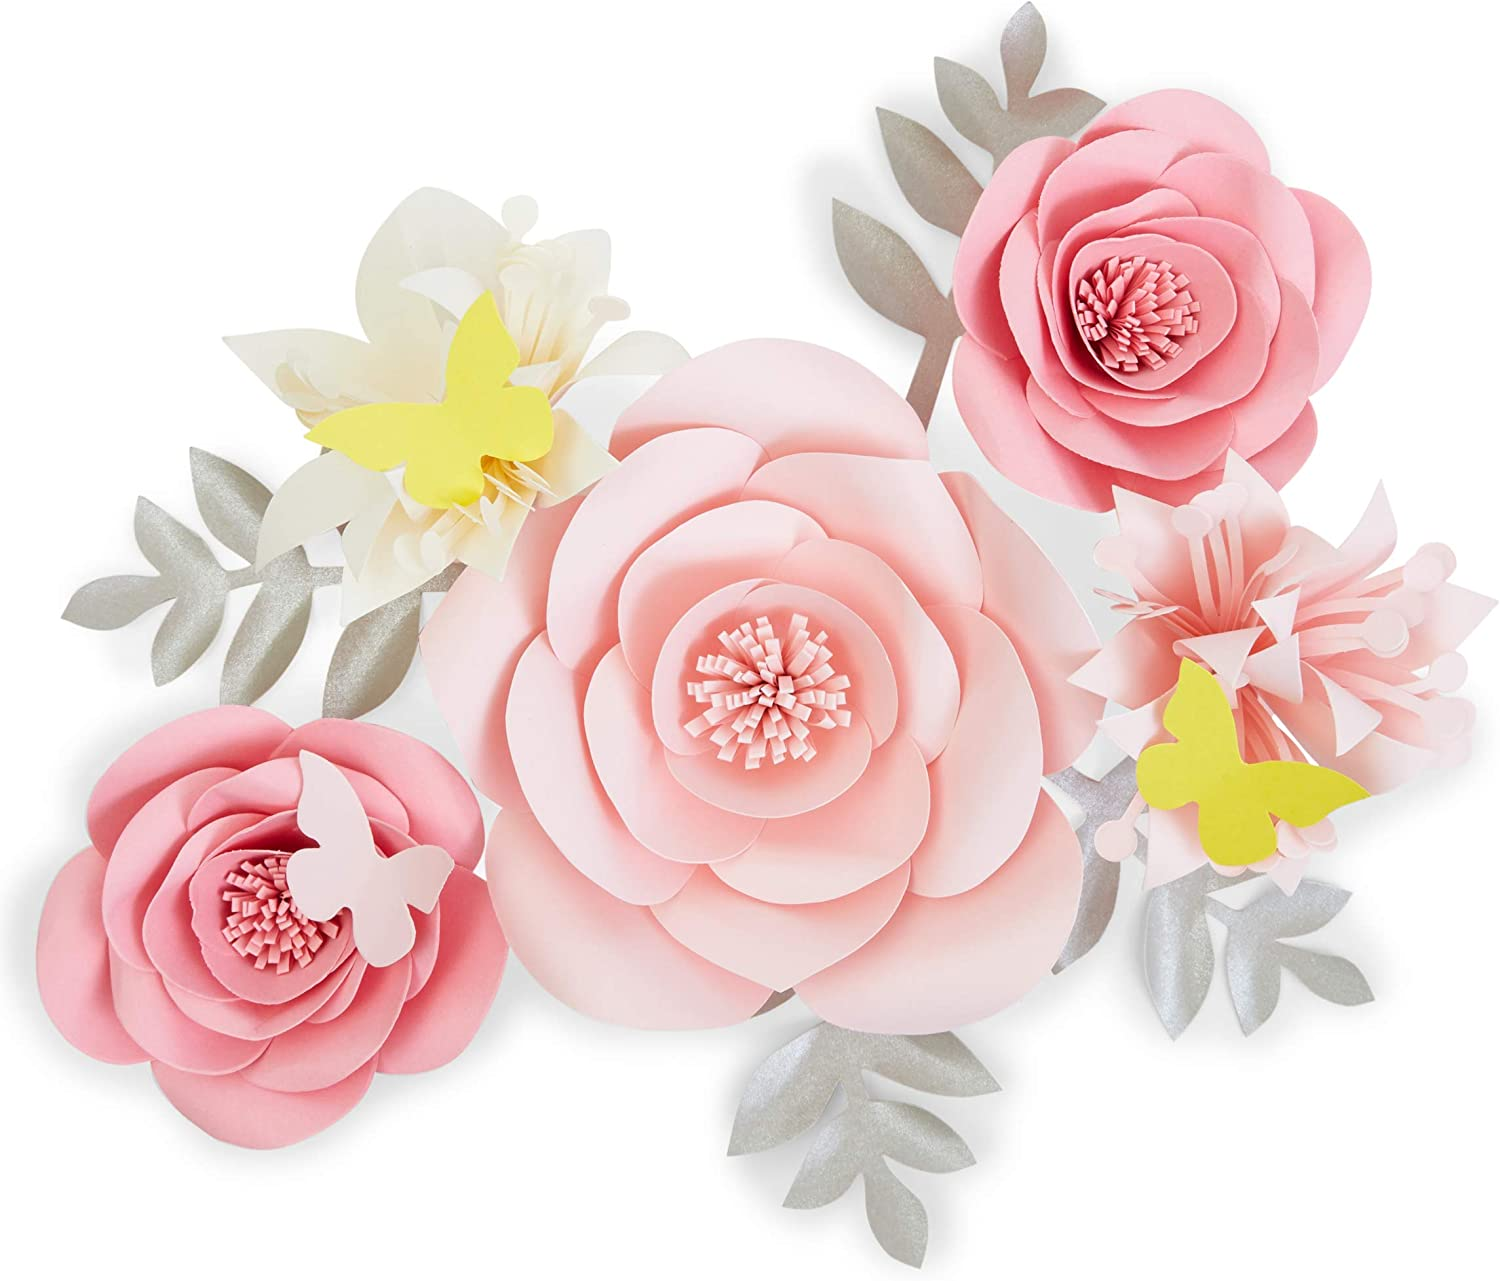 3D Paper Flowers, Pink Wall Decor (12 Pieces)